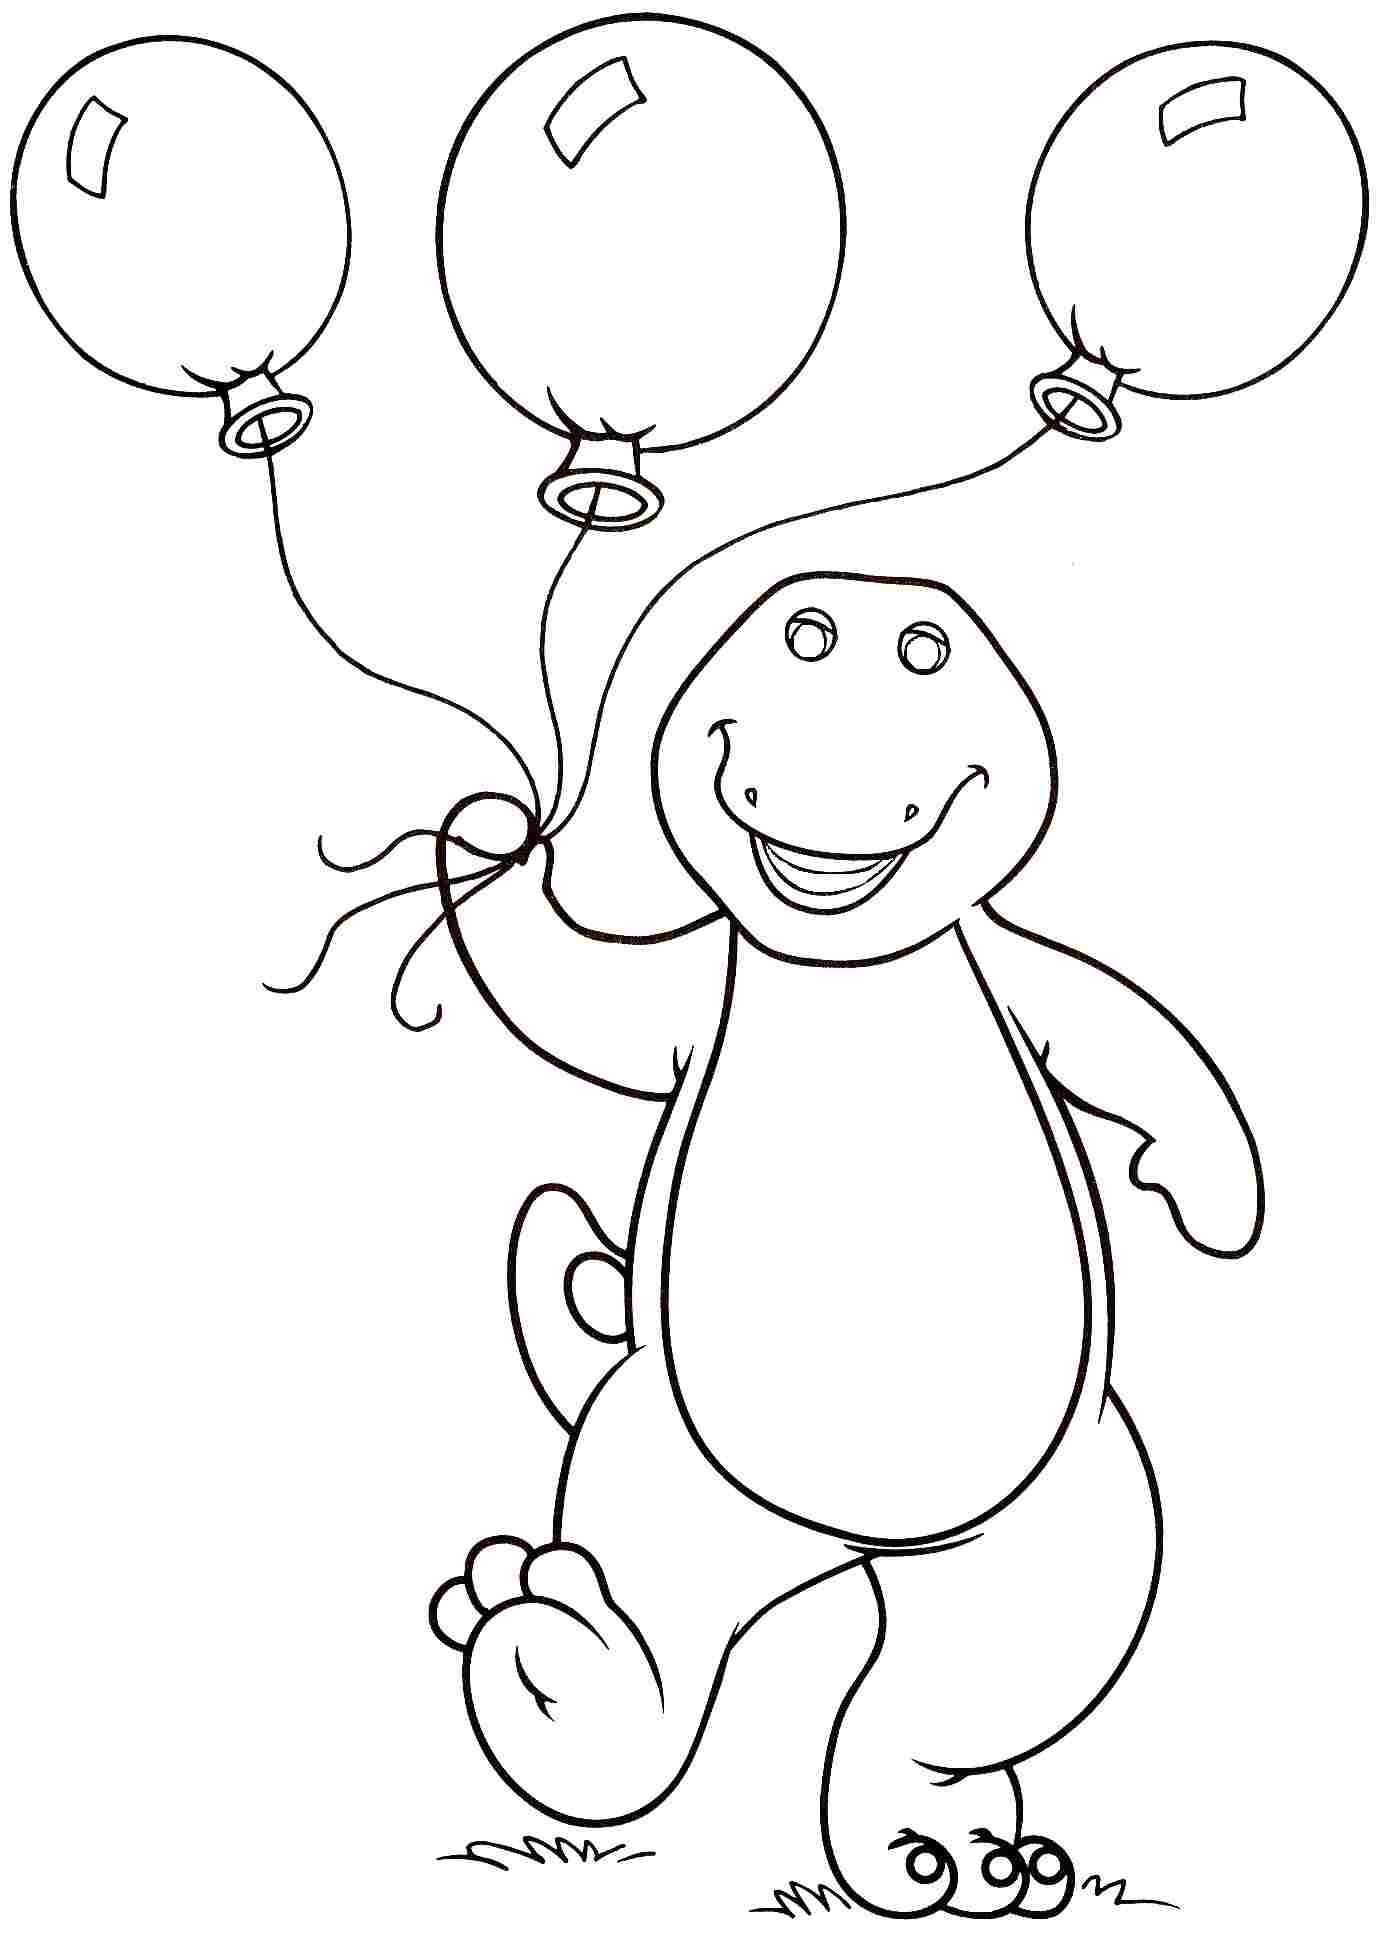 1381x1937 Image Result For Free Barney Printables Eventsparties